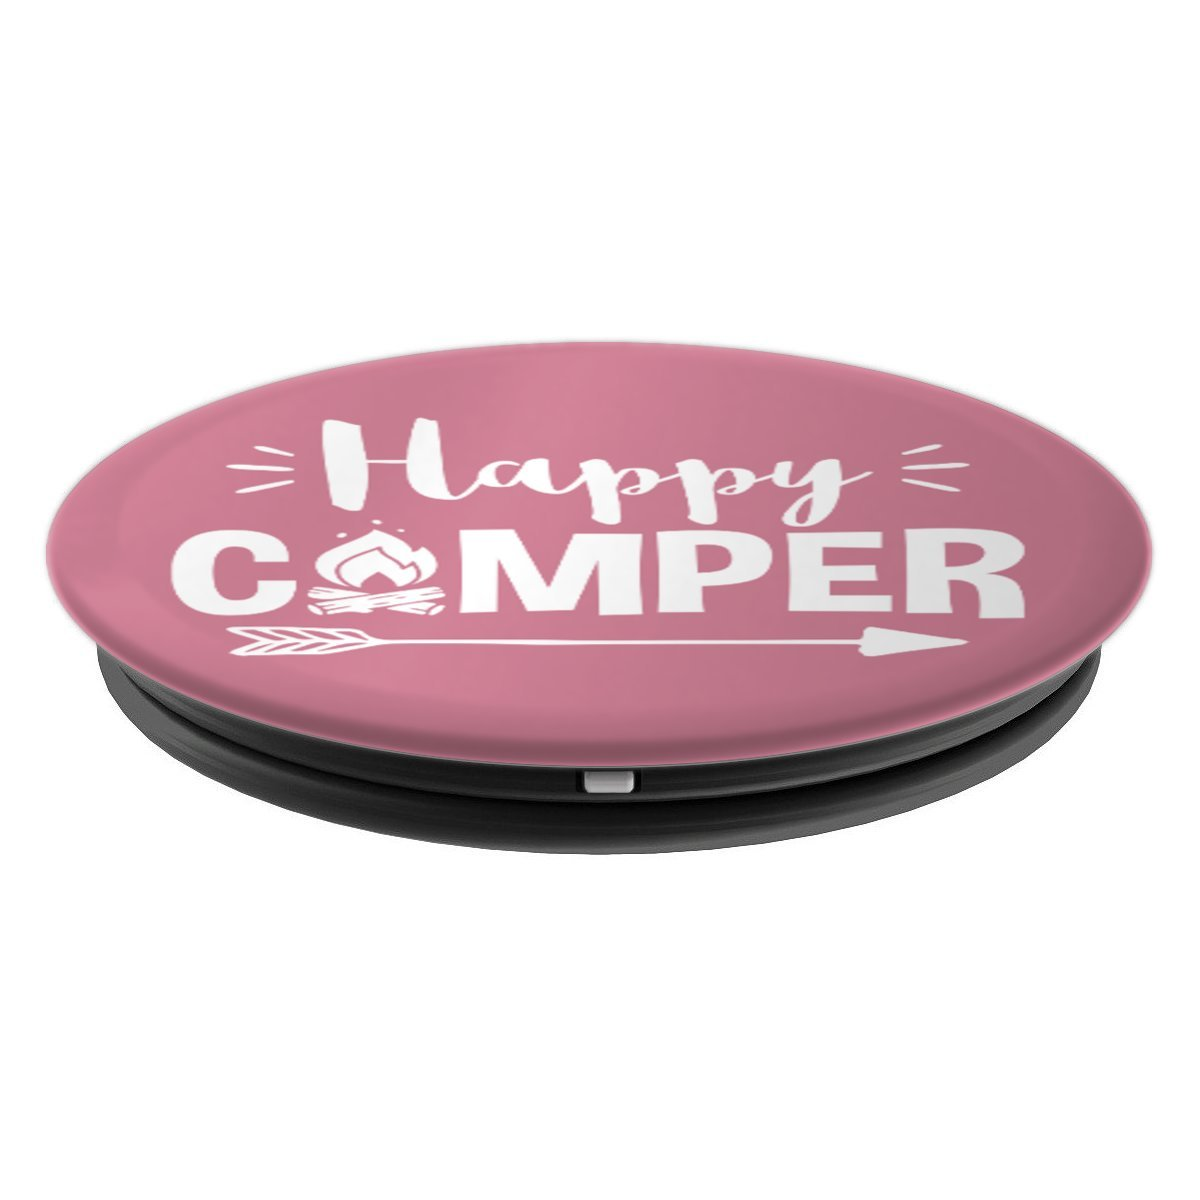 Collapsible PopSocket made our CampingForFoodies hand-selected list of 100+ Camping Stocking Stuffers For RV And Tent Campers!